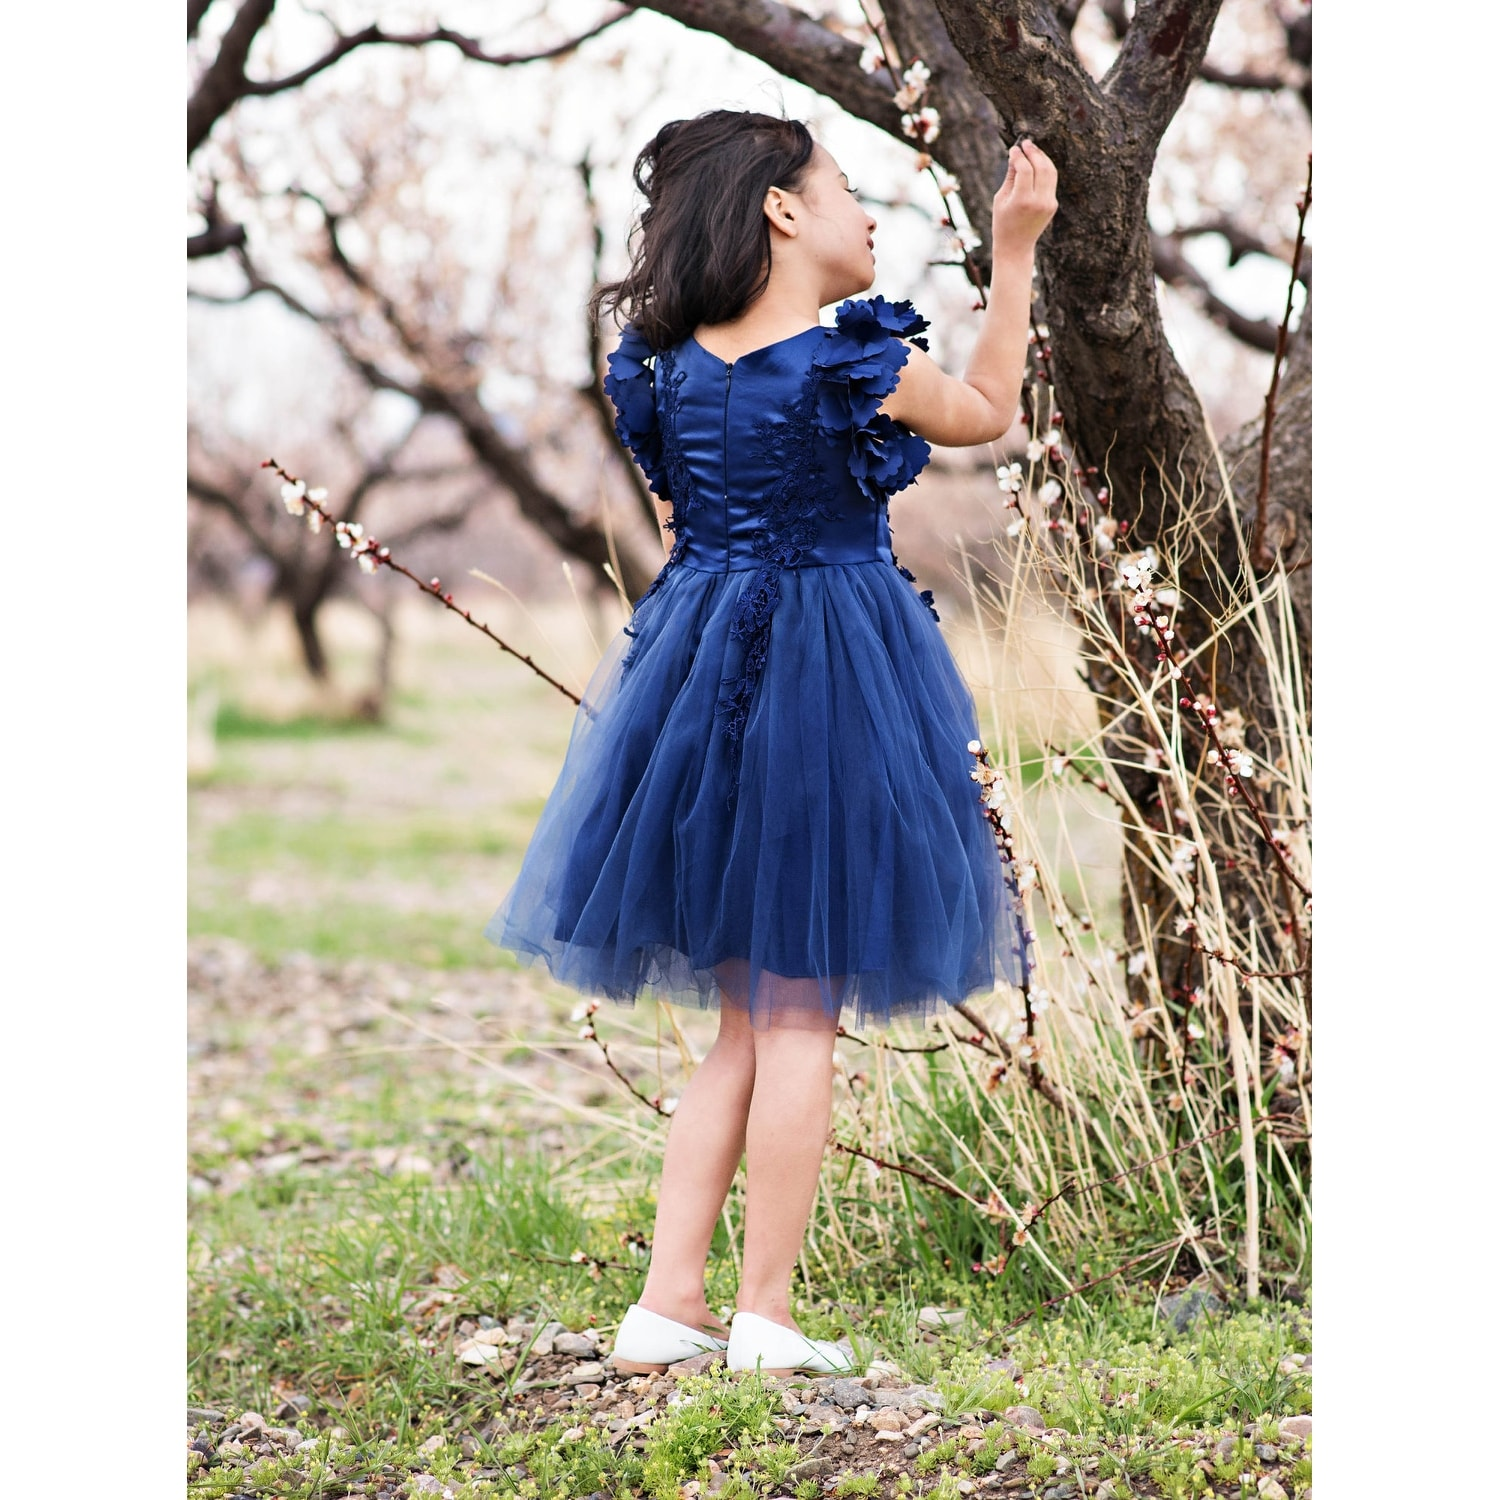 2fa974123ae Shop Just Couture Girls Navy Petal Sleeve Satin Junior Bridesmaid Dress -  Free Shipping Today - Overstock - 23089448